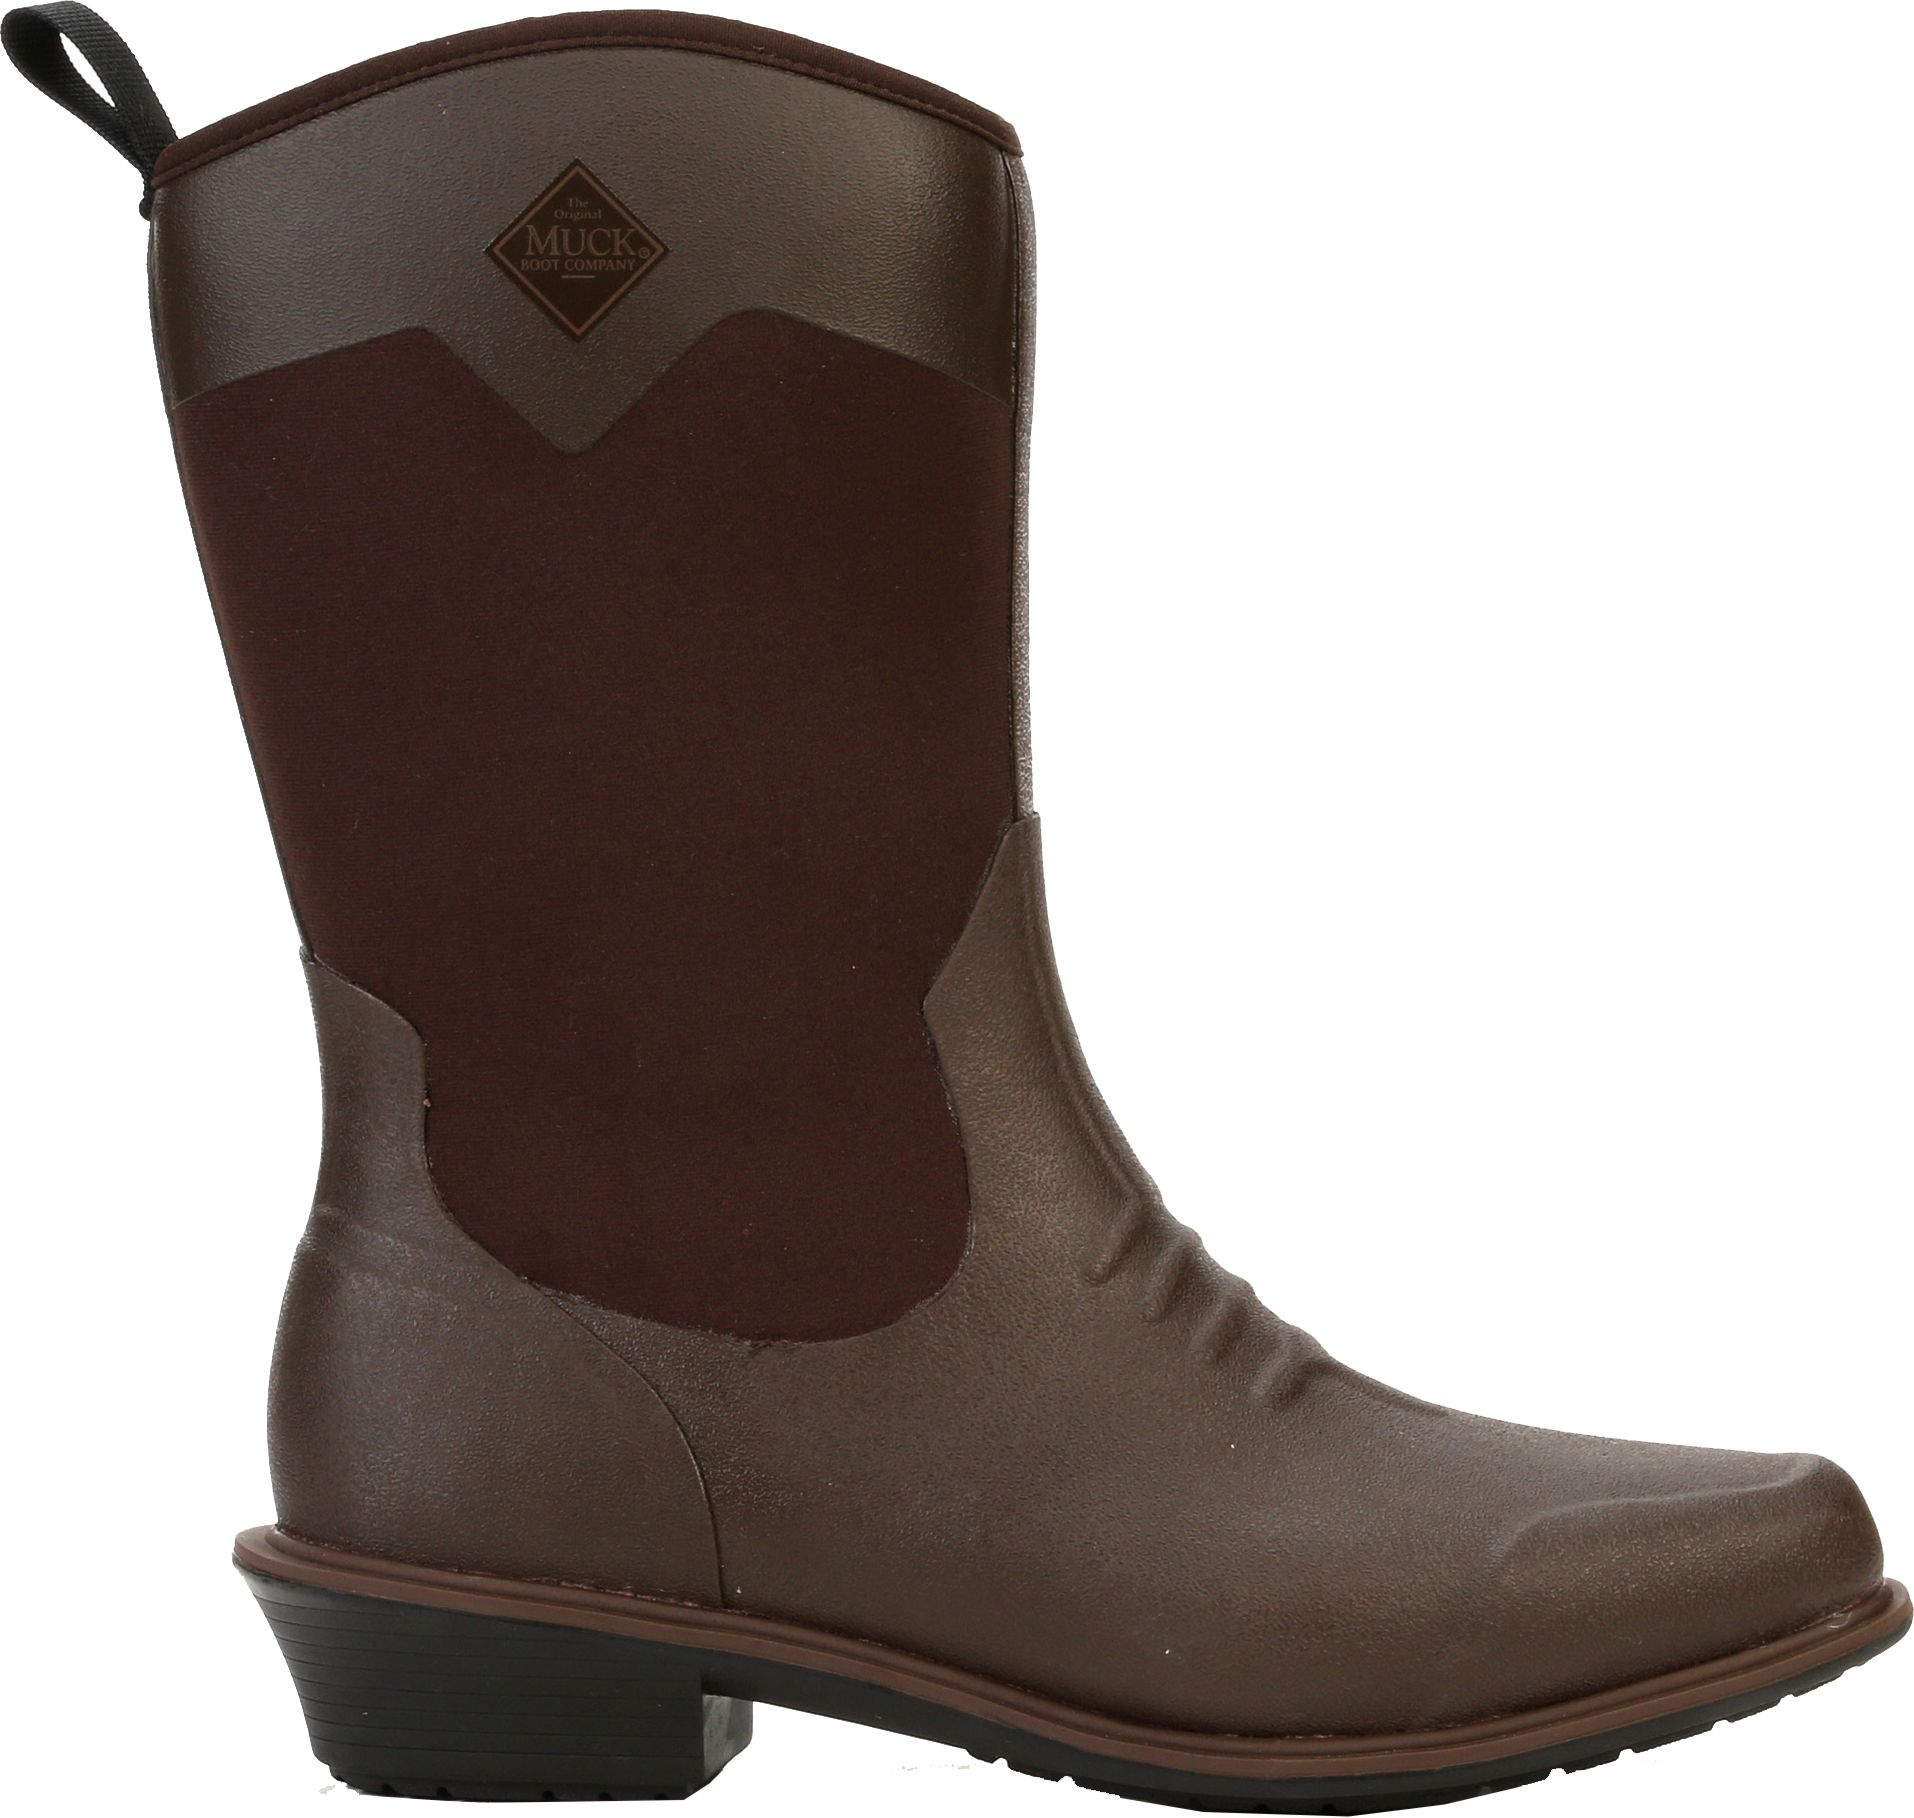 Outlet For Nice Buy Cheap Best Prices Muck Women's Ryder II Wellington Boots Low Cost Cheap Price Sale Manchester Great Sale Cheap Manchester Great Sale l5Vya